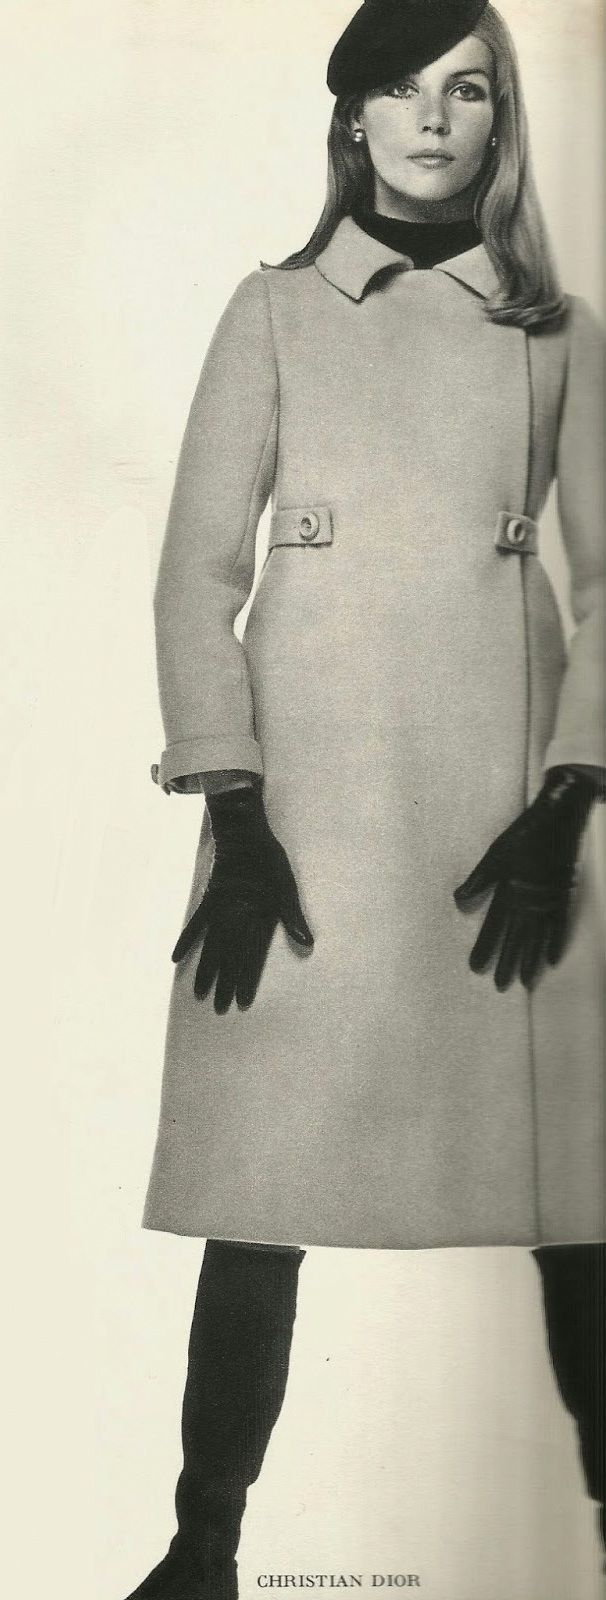 Christian Dior ad, 1966 - 1967 | simple grey vintage Chesterfield style evening coat, black gloves & beret